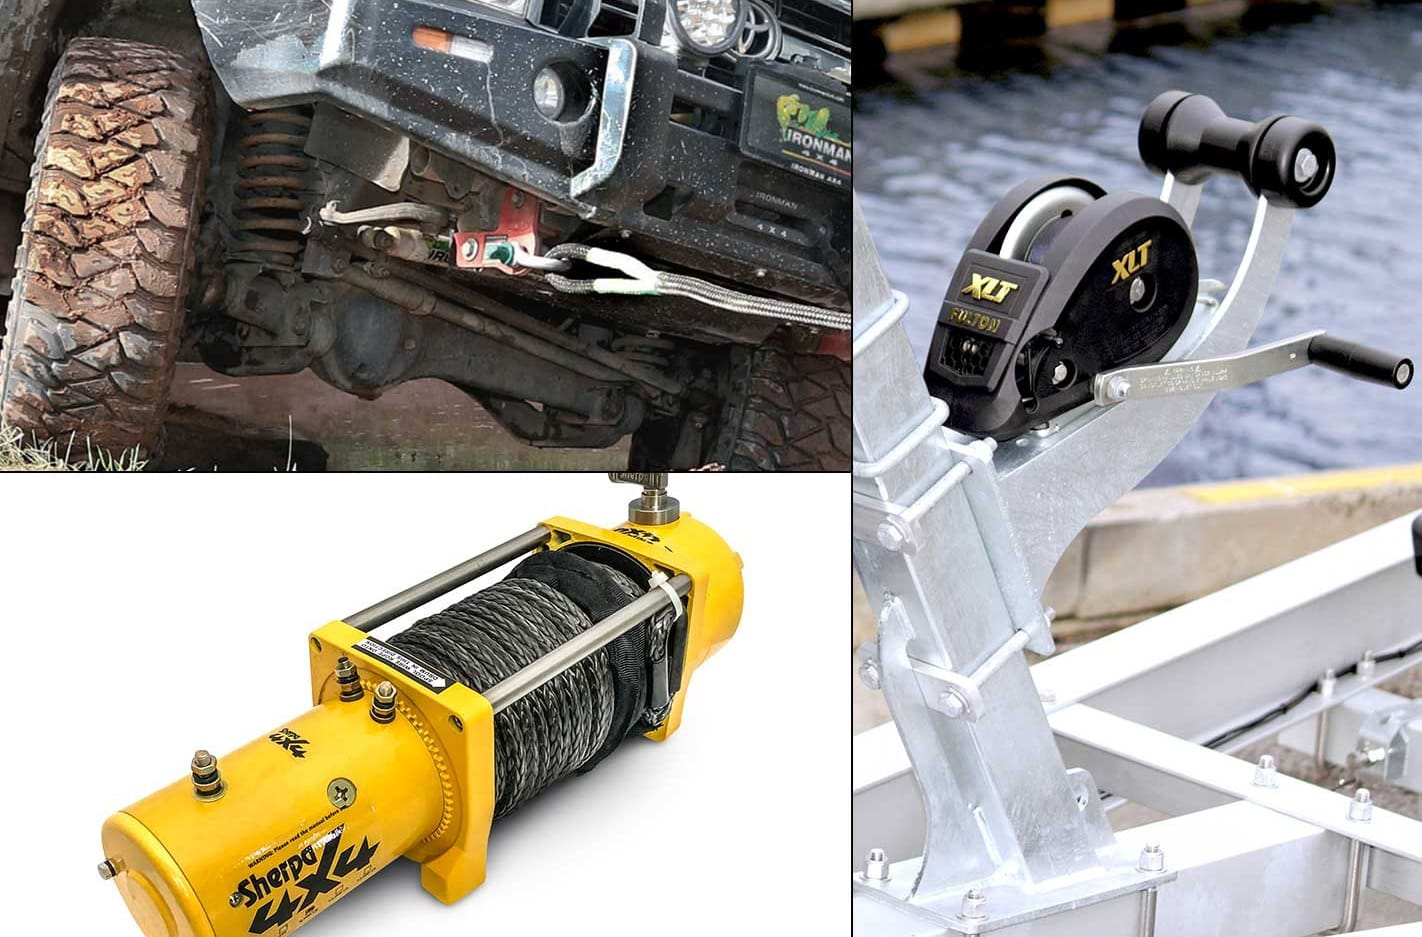 4x4 winches and recovery gear new 4x4 products